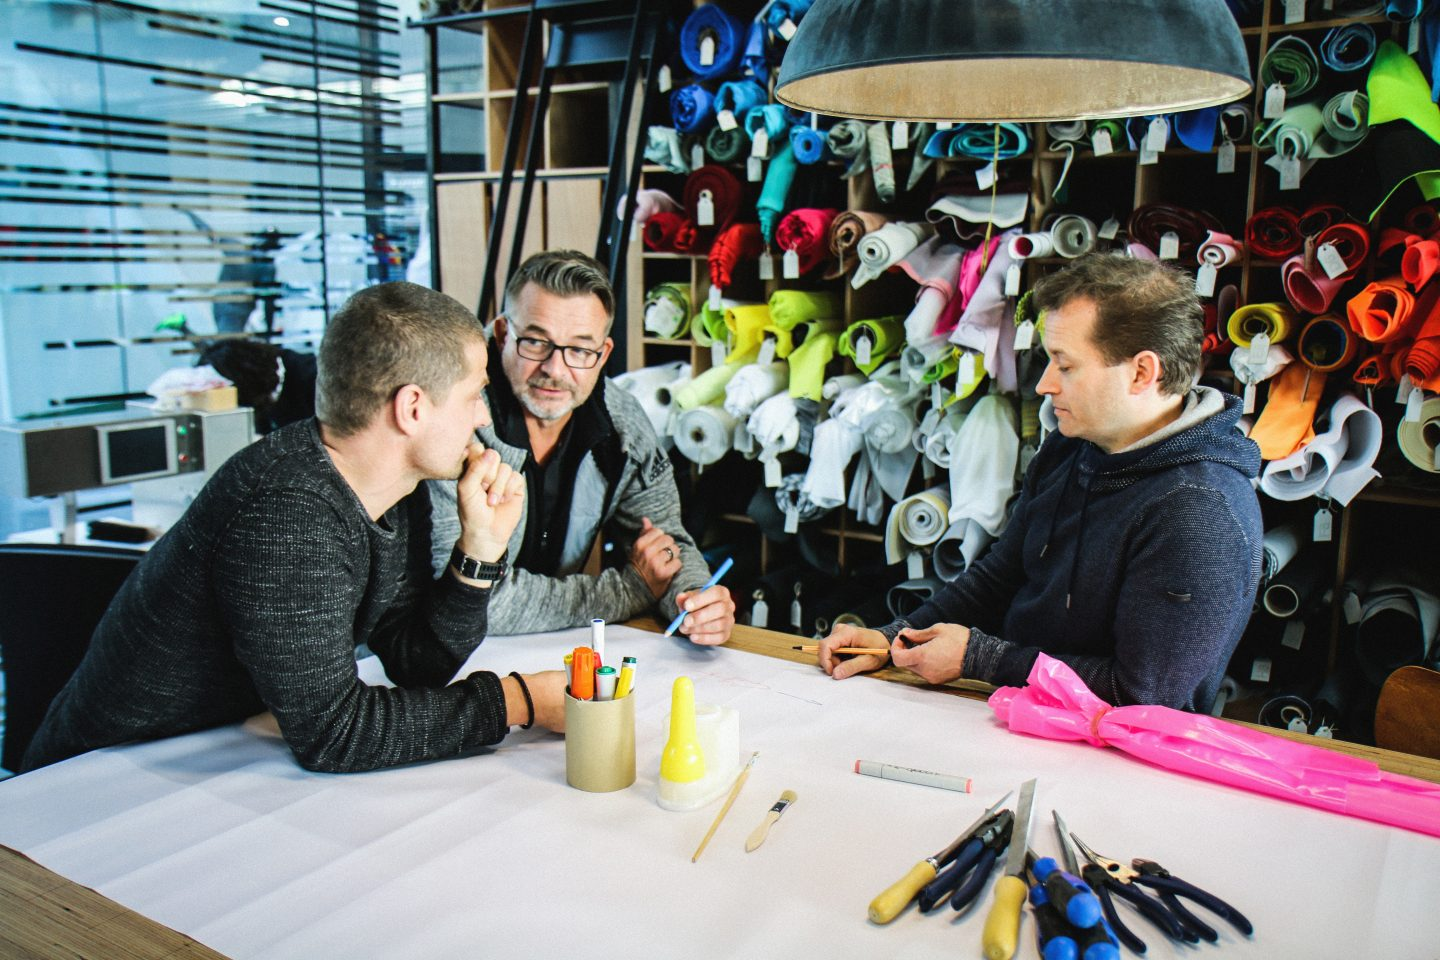 adidas employees discussing ideas; adidas-Makerlab-creativity-employees-creators- IT-department-workshop